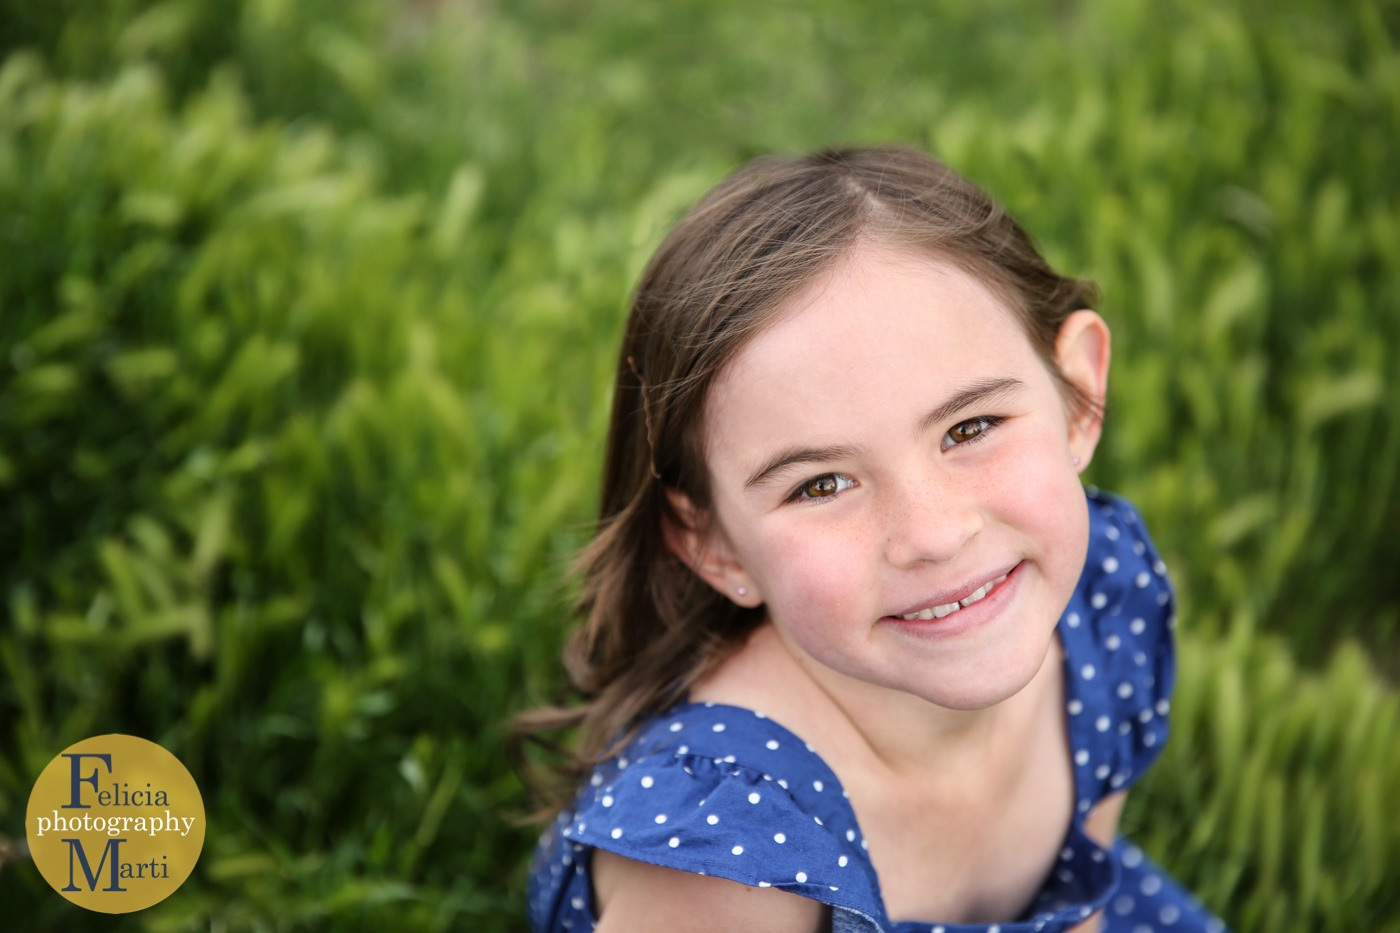 The Joy of Being 8: Childhood Portraits